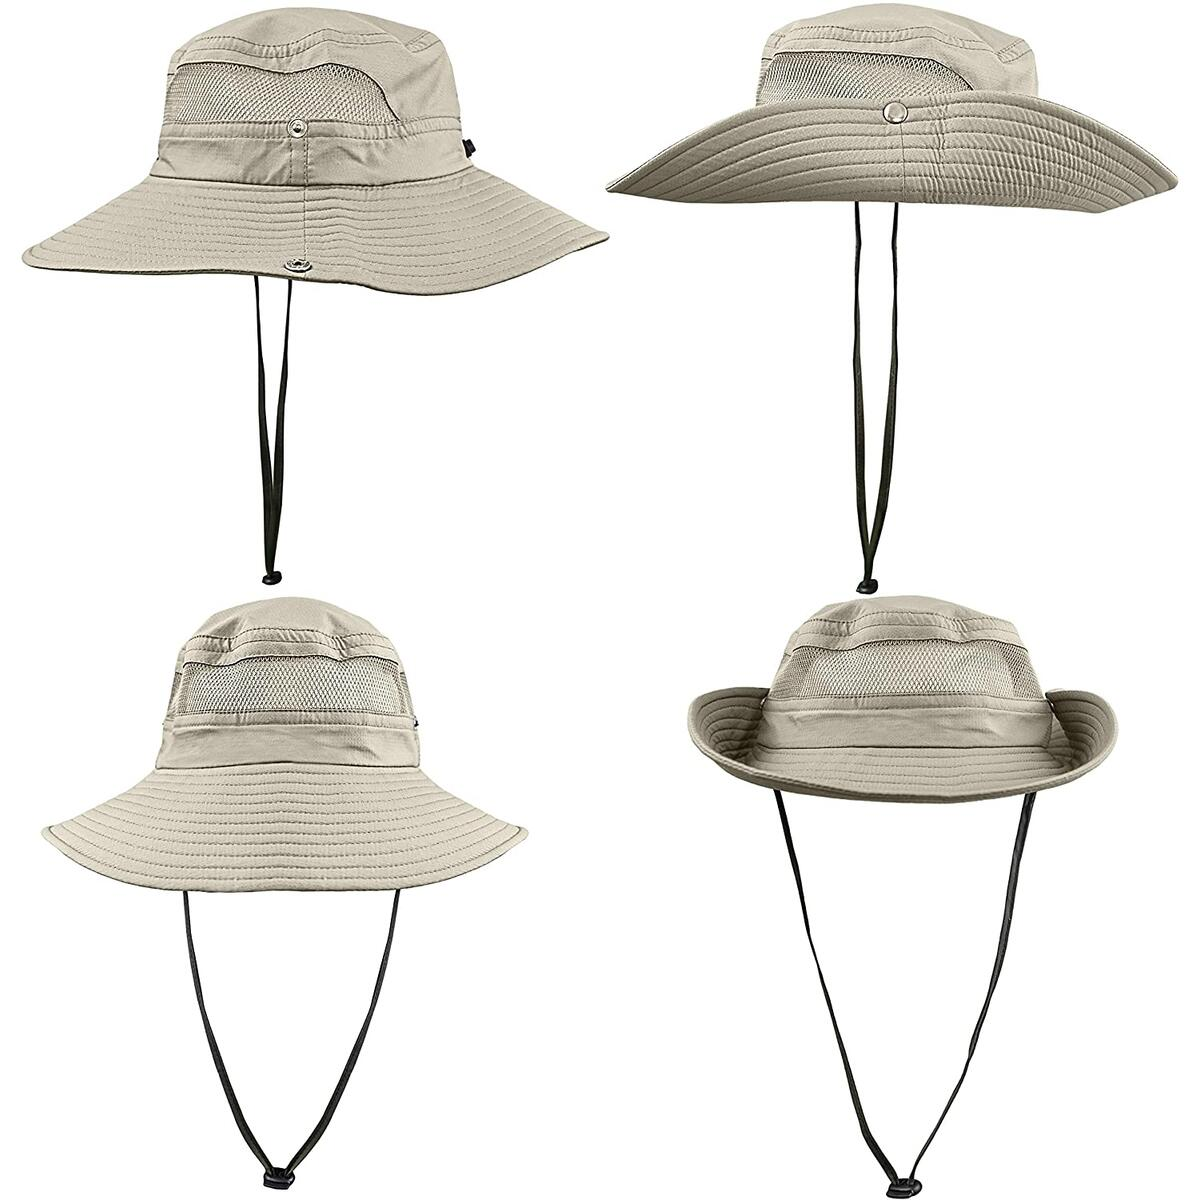 GearTOP Fishing Hat and Safari Cap with UPF50+ Sun Protection - Premium Hats for Men and Women (Khaki, Beige, Army Green, Black Camo))